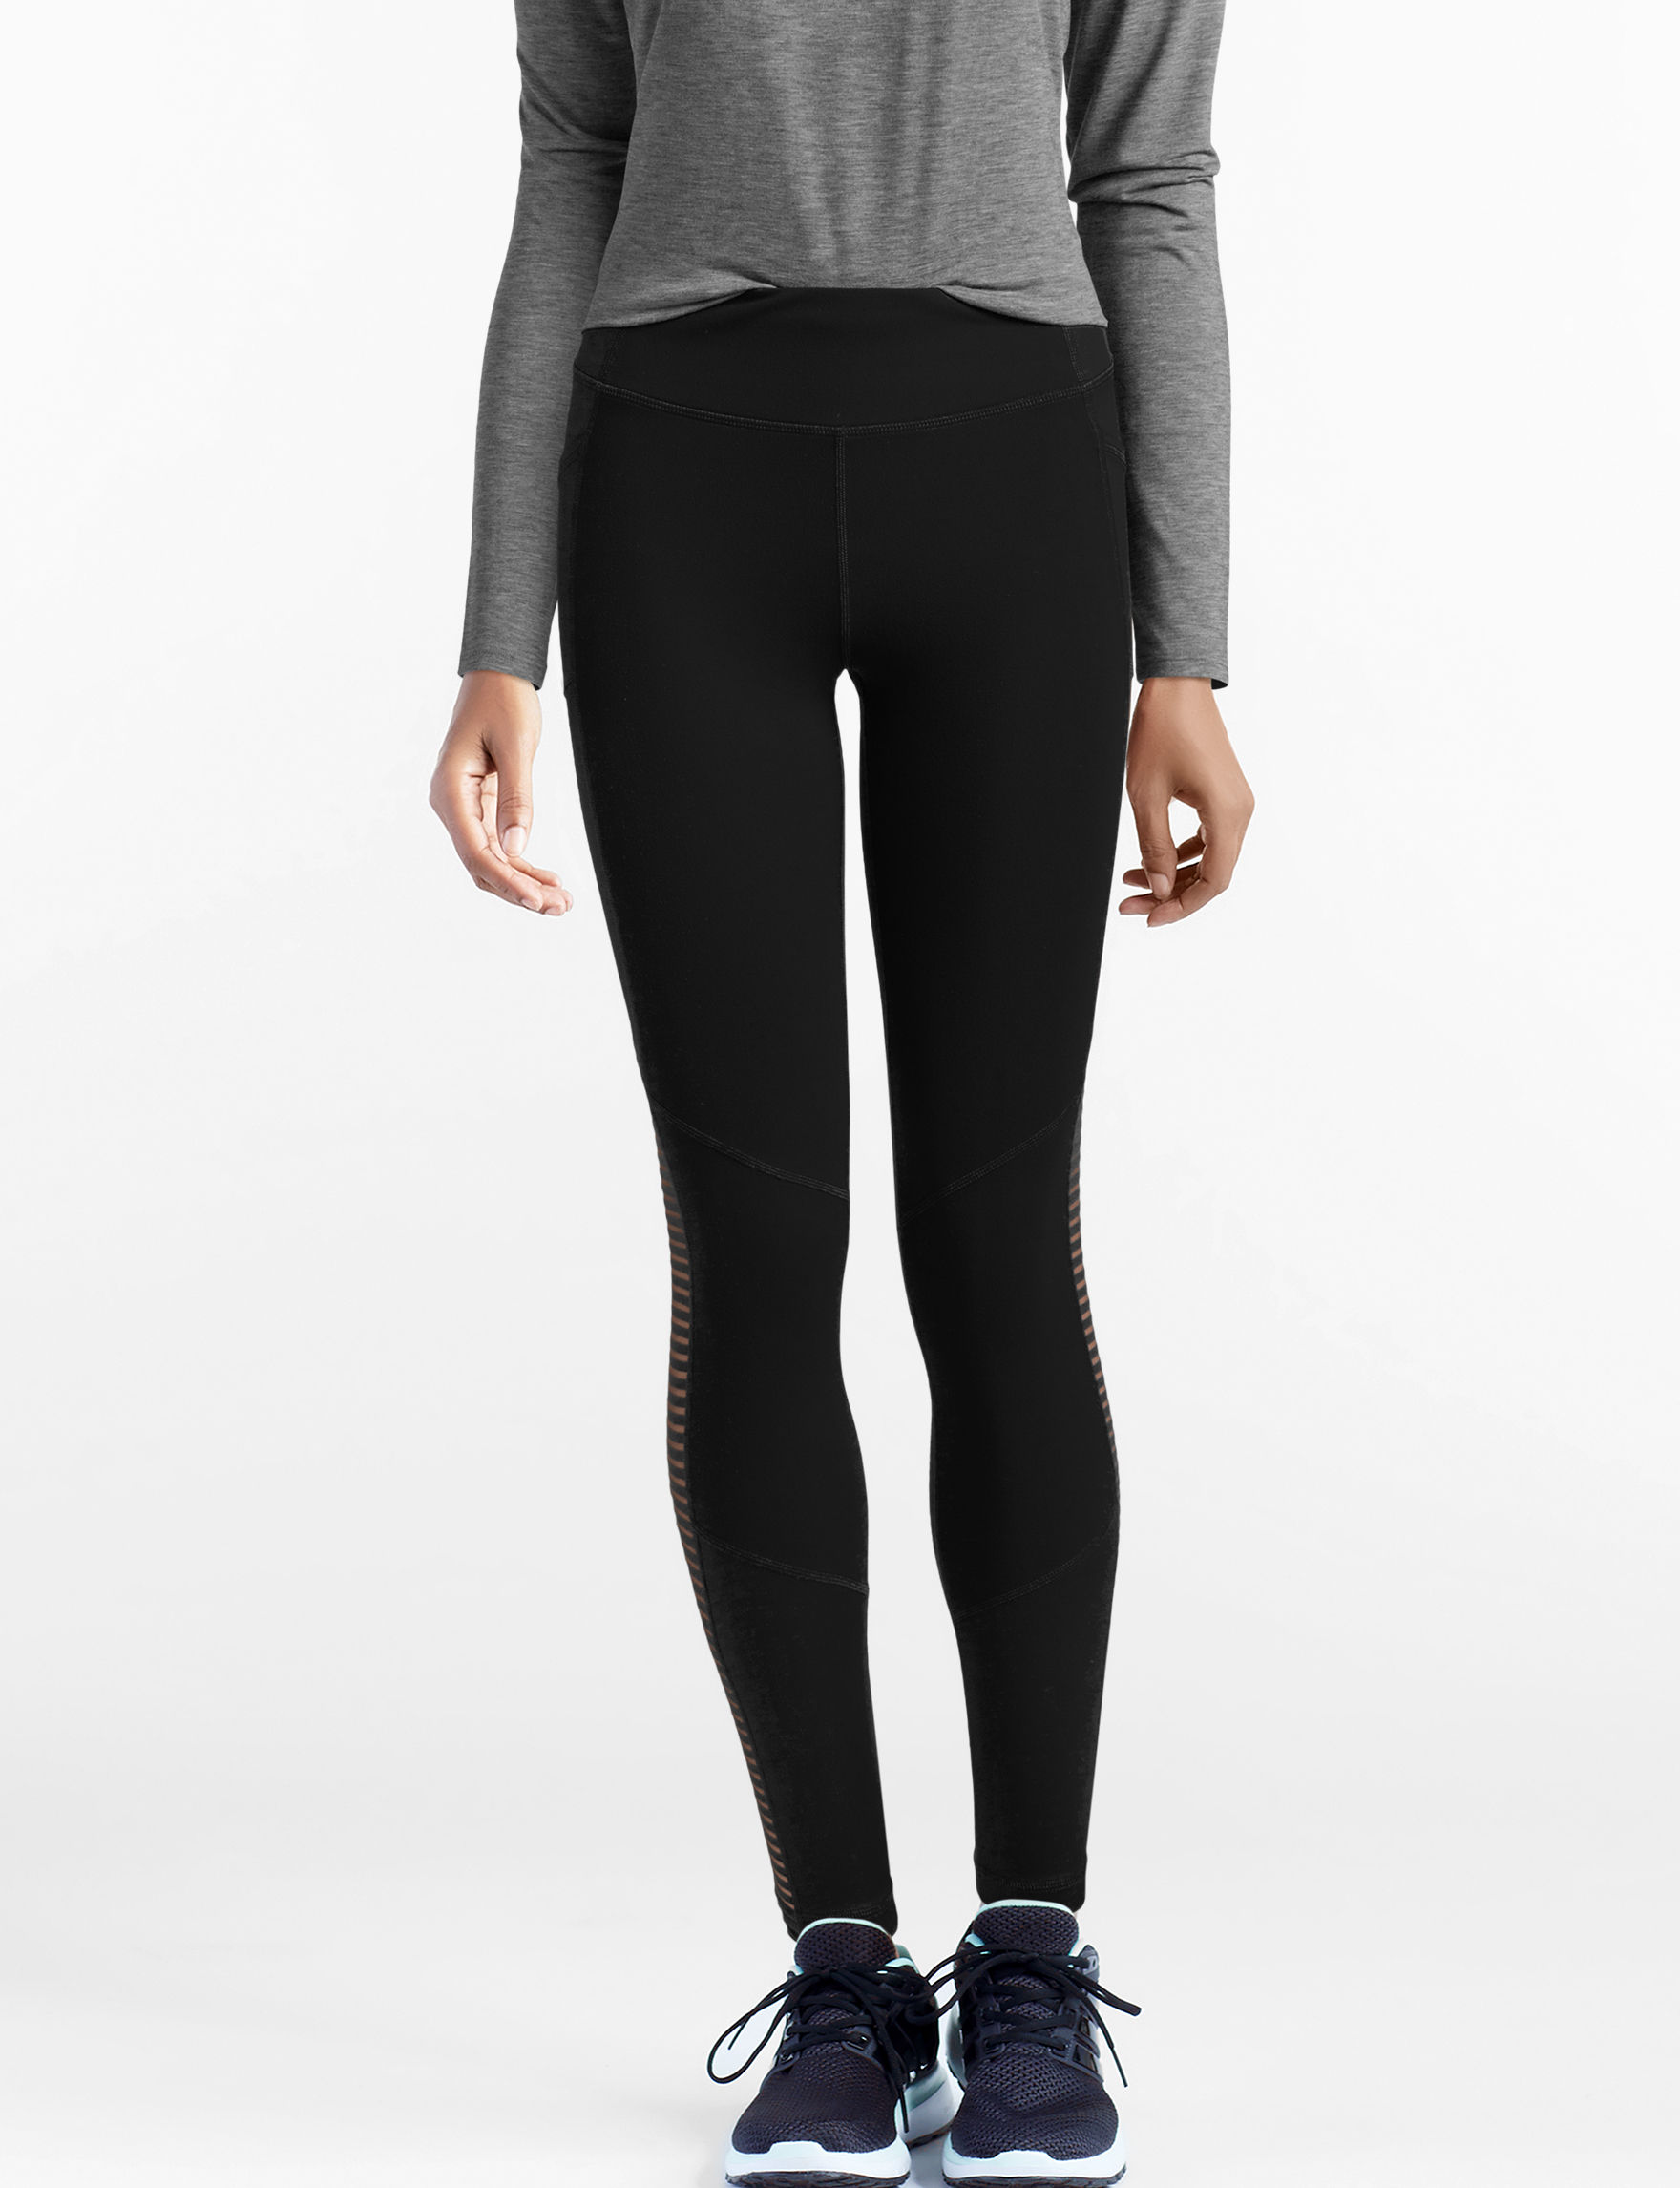 Free 2 B Black Leggings